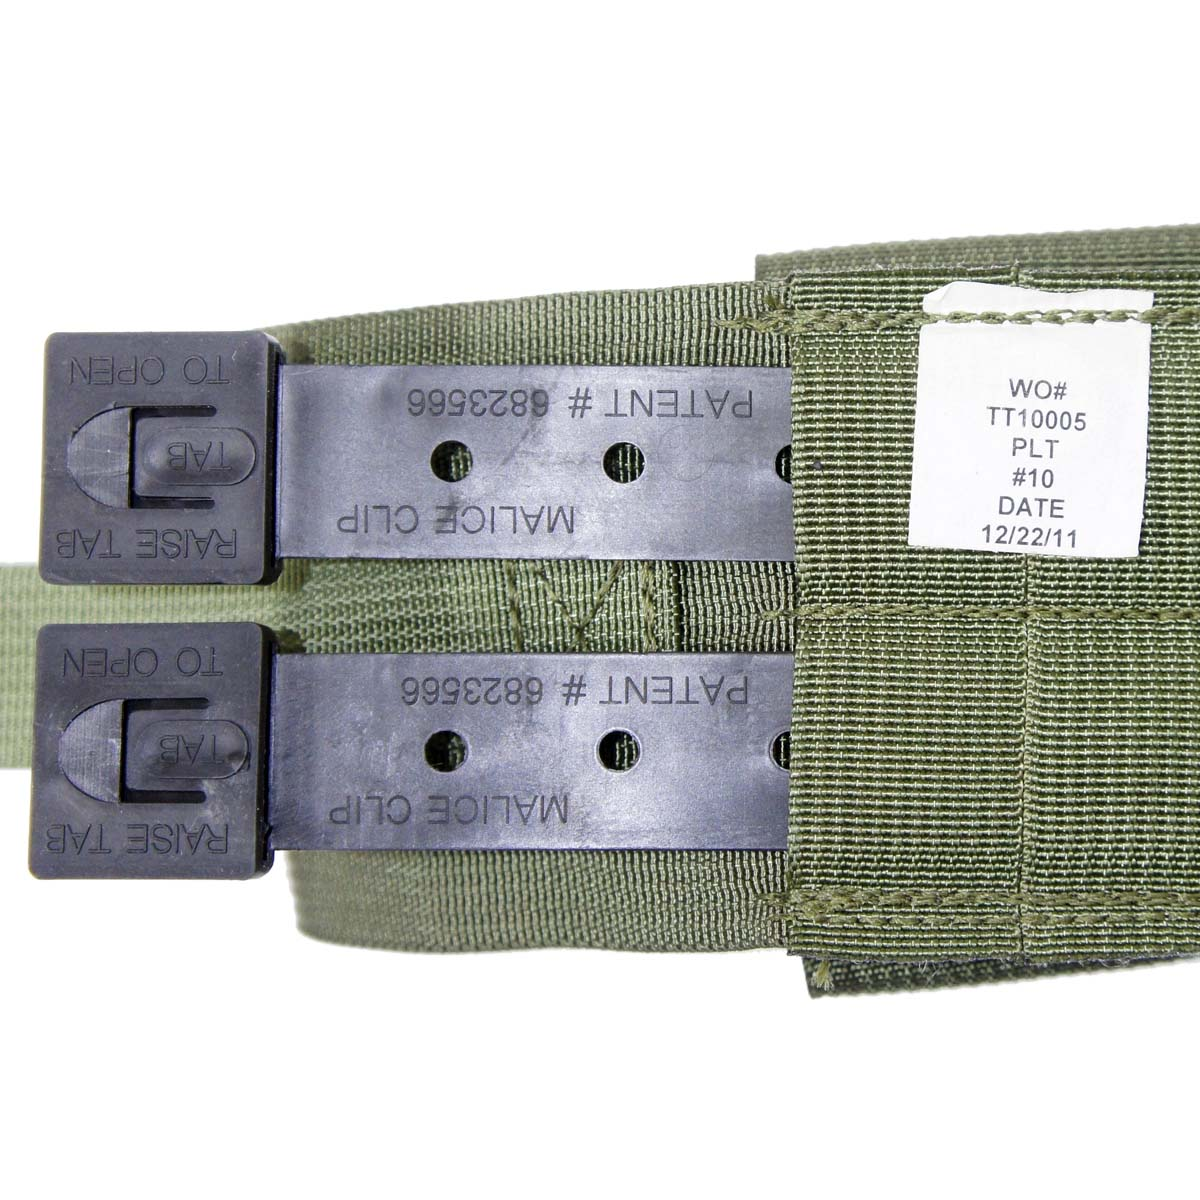 20080292-4 TACTICAL TAILOR レディオポーチ *OD/AN/PRC-148 MBITR収納可能